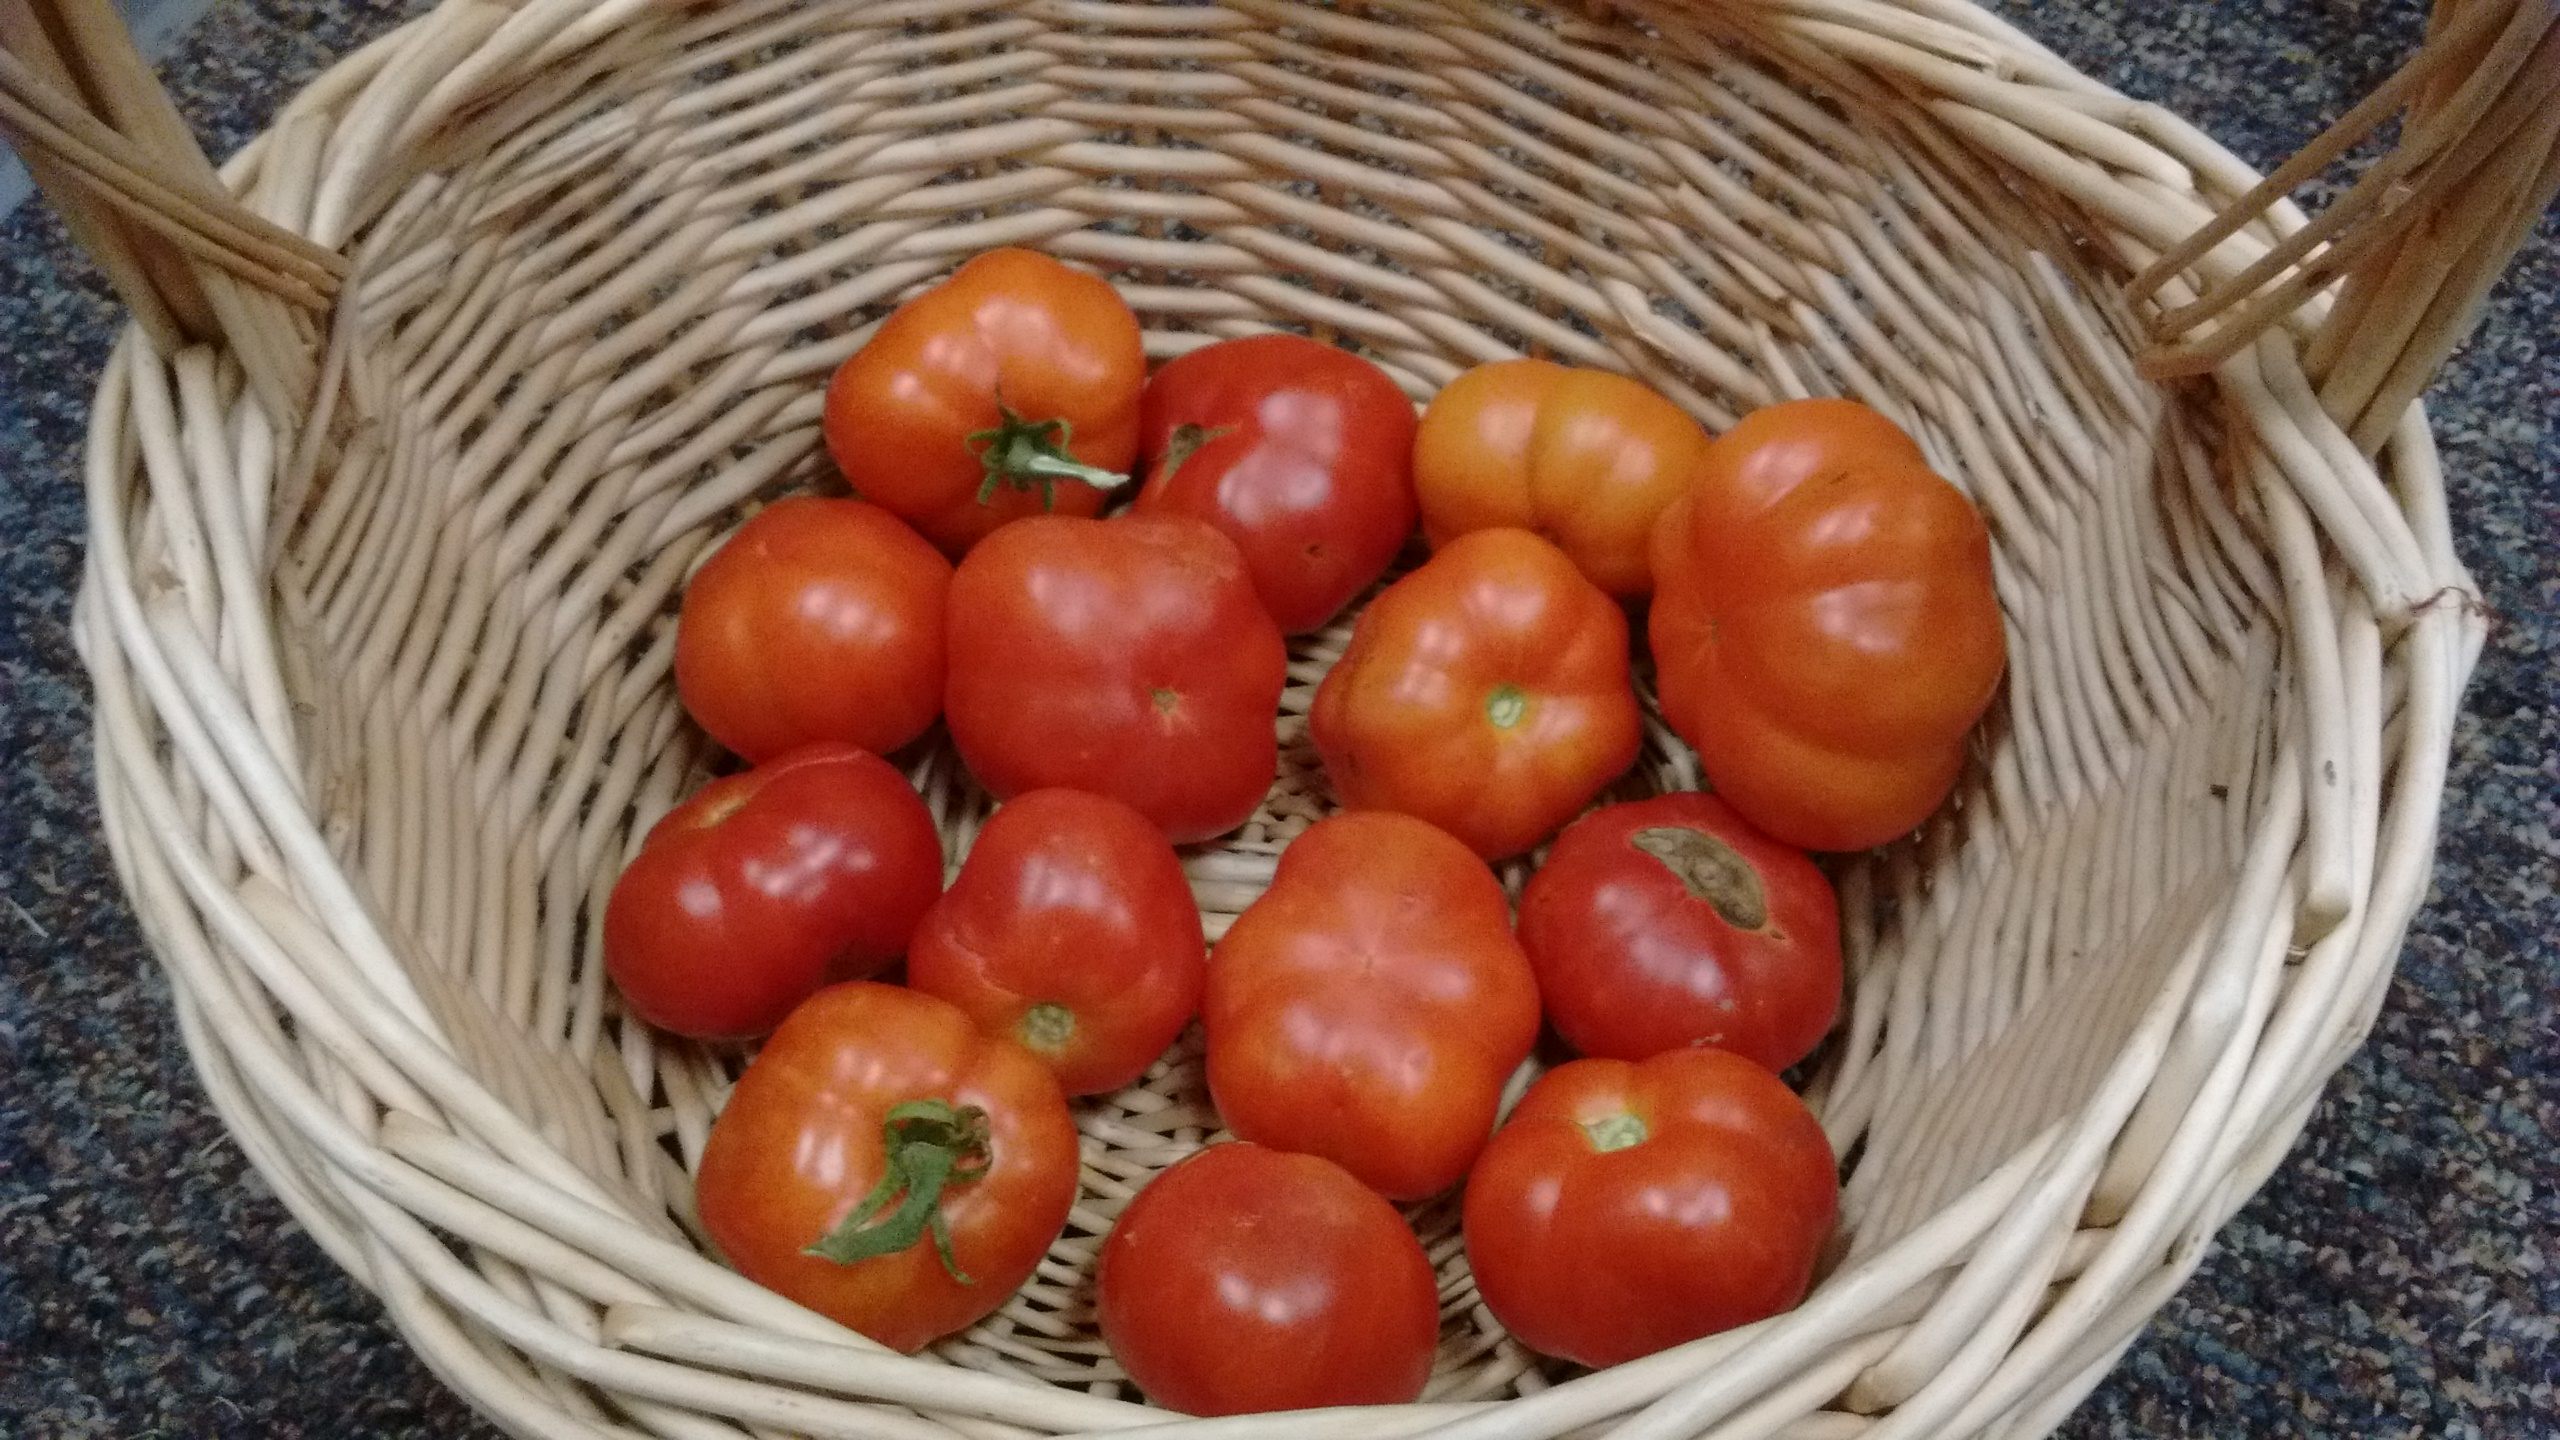 Bowl of tomatoes.